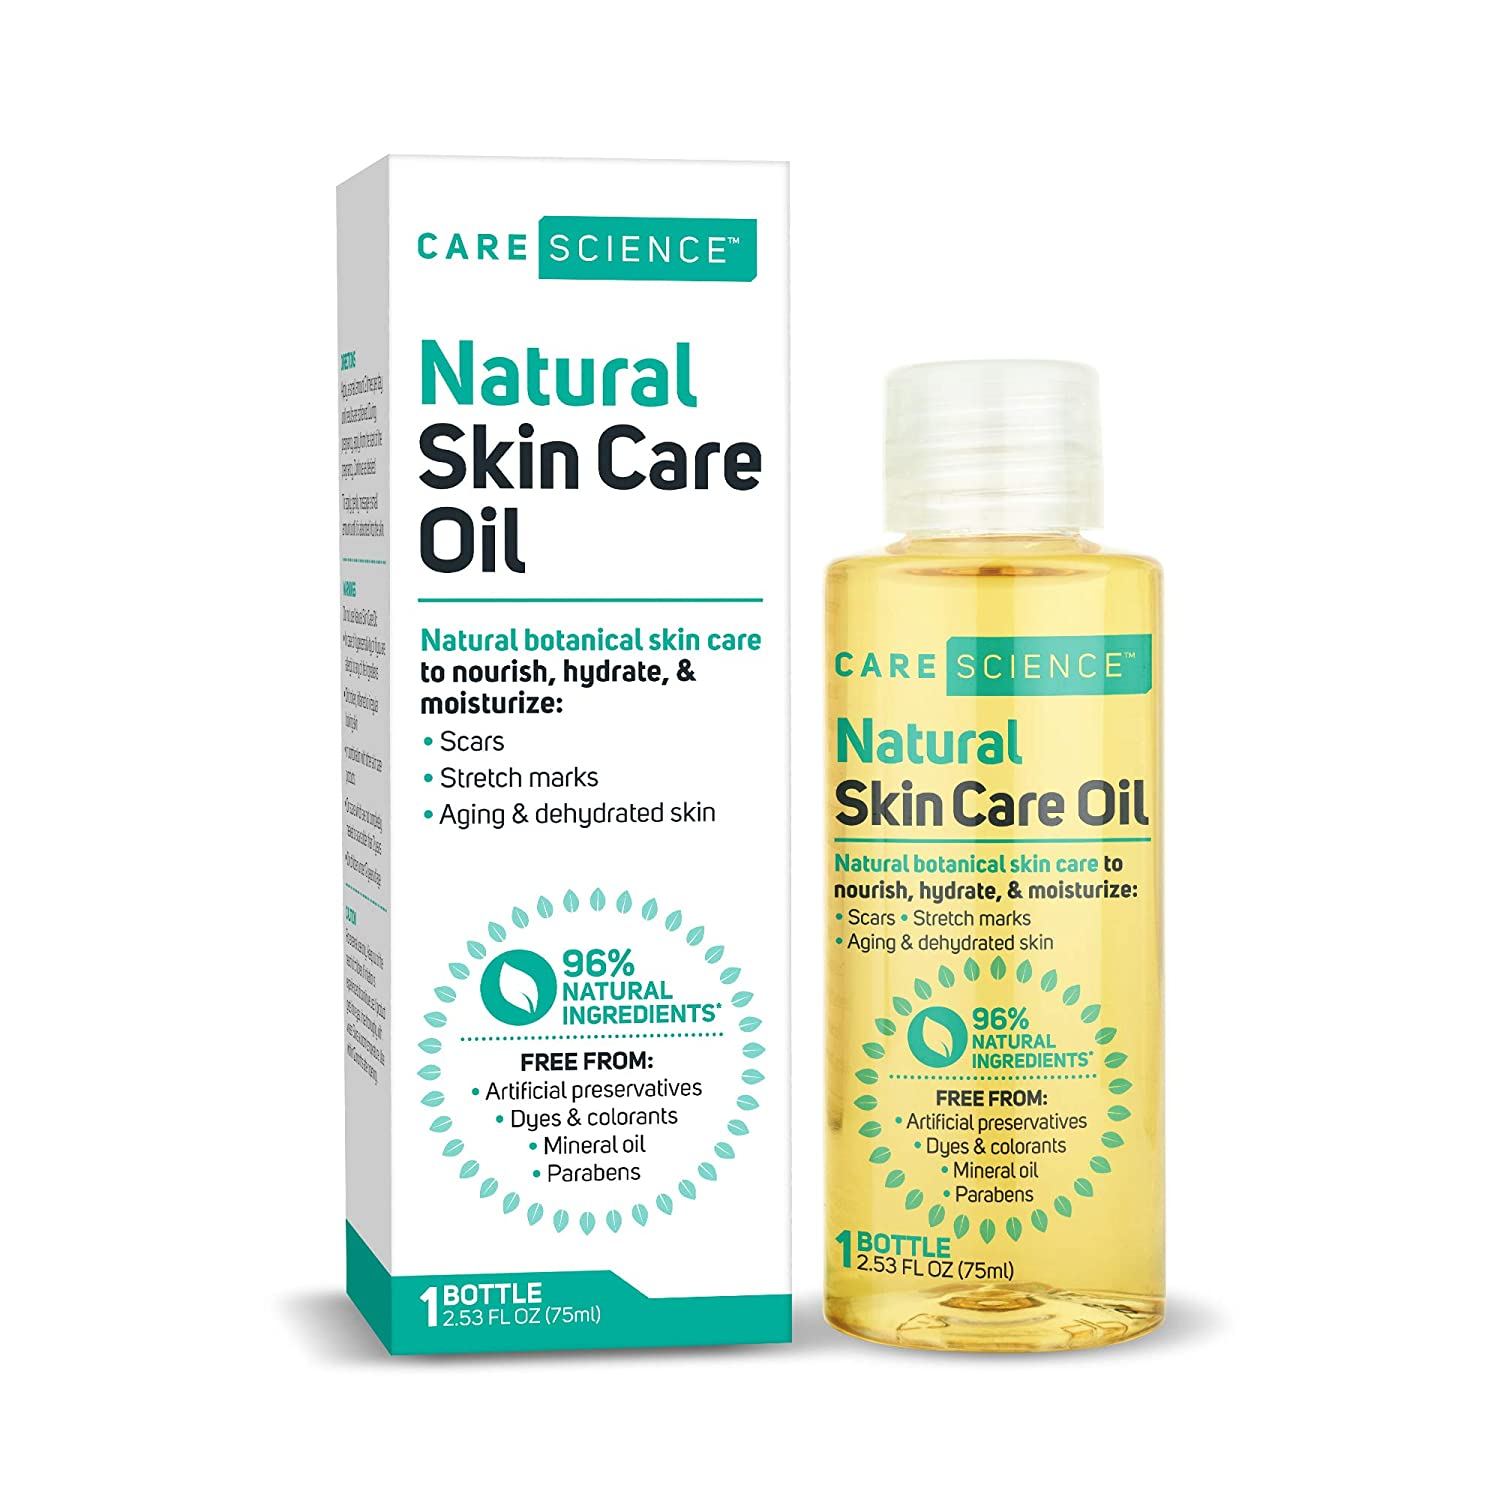 Care Science Multiuse Natural Skincare Oil, 75 ml | For Scars, Stretch Marks, Aging | Vitamin E Oil, Avocado Oil, Olive Oil, Soybean Oil, Coconut Oil, Marigold Flowers, Sunflower Seed Oil, More